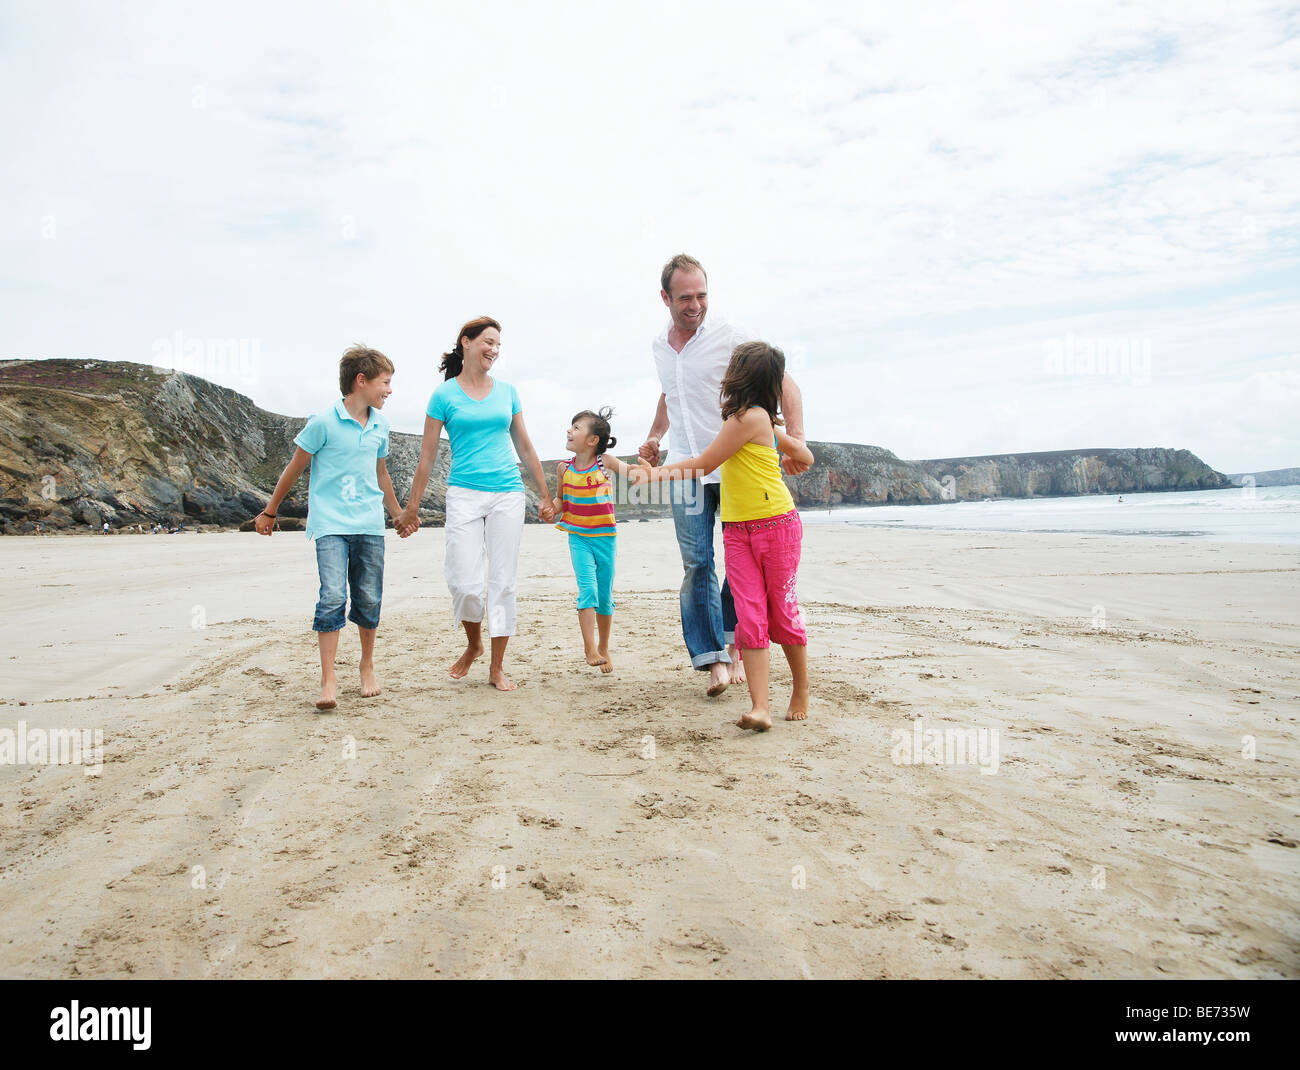 Woman, man, two girls and a boy walking along the beach, hand in hand, laughing, Bretagne, France, Europe - Stock Image